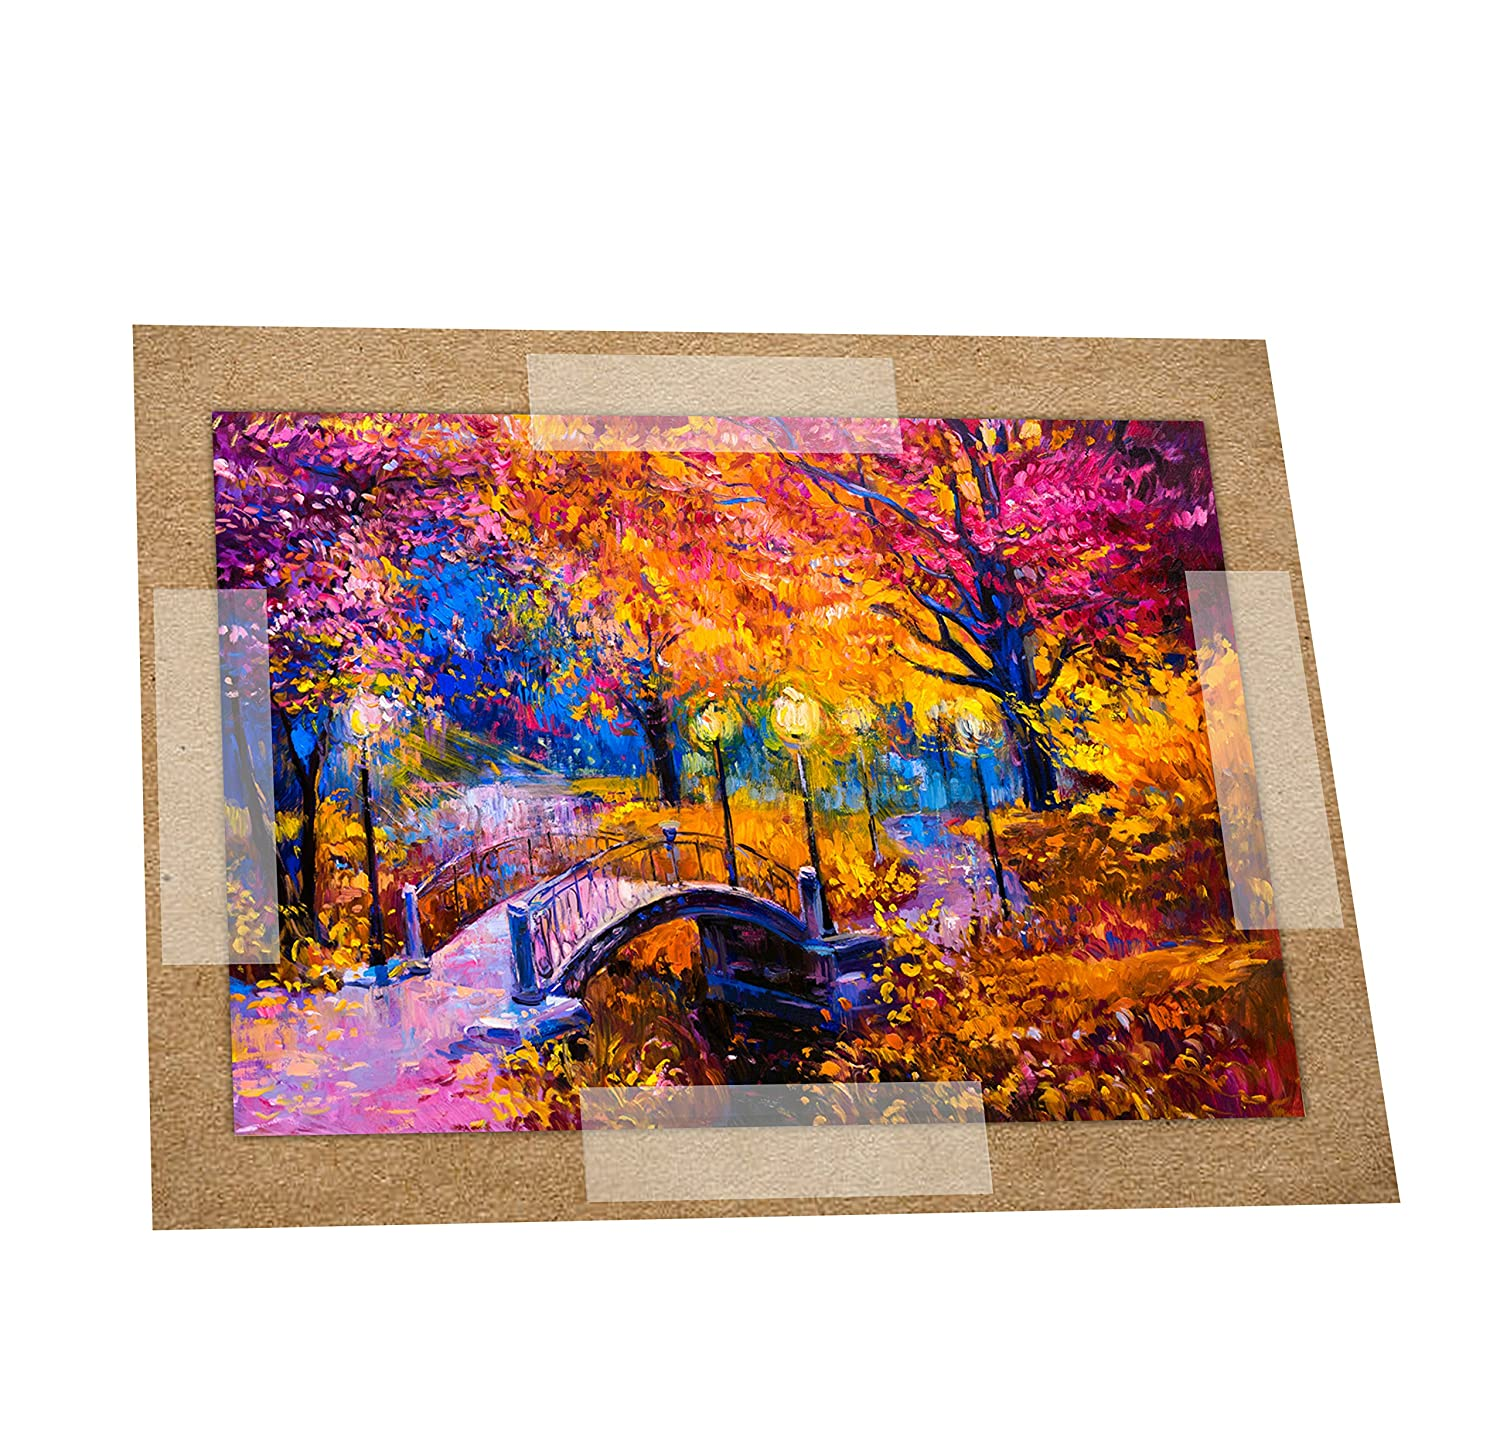 SEE THRU MOUNT STRIPS 1.25INX 4IN 60CT (1 pack) USE FOR MOUNTING ARTWORK OR PHOTOS TO MATS SAFELY AND EASILY by Better Crafts